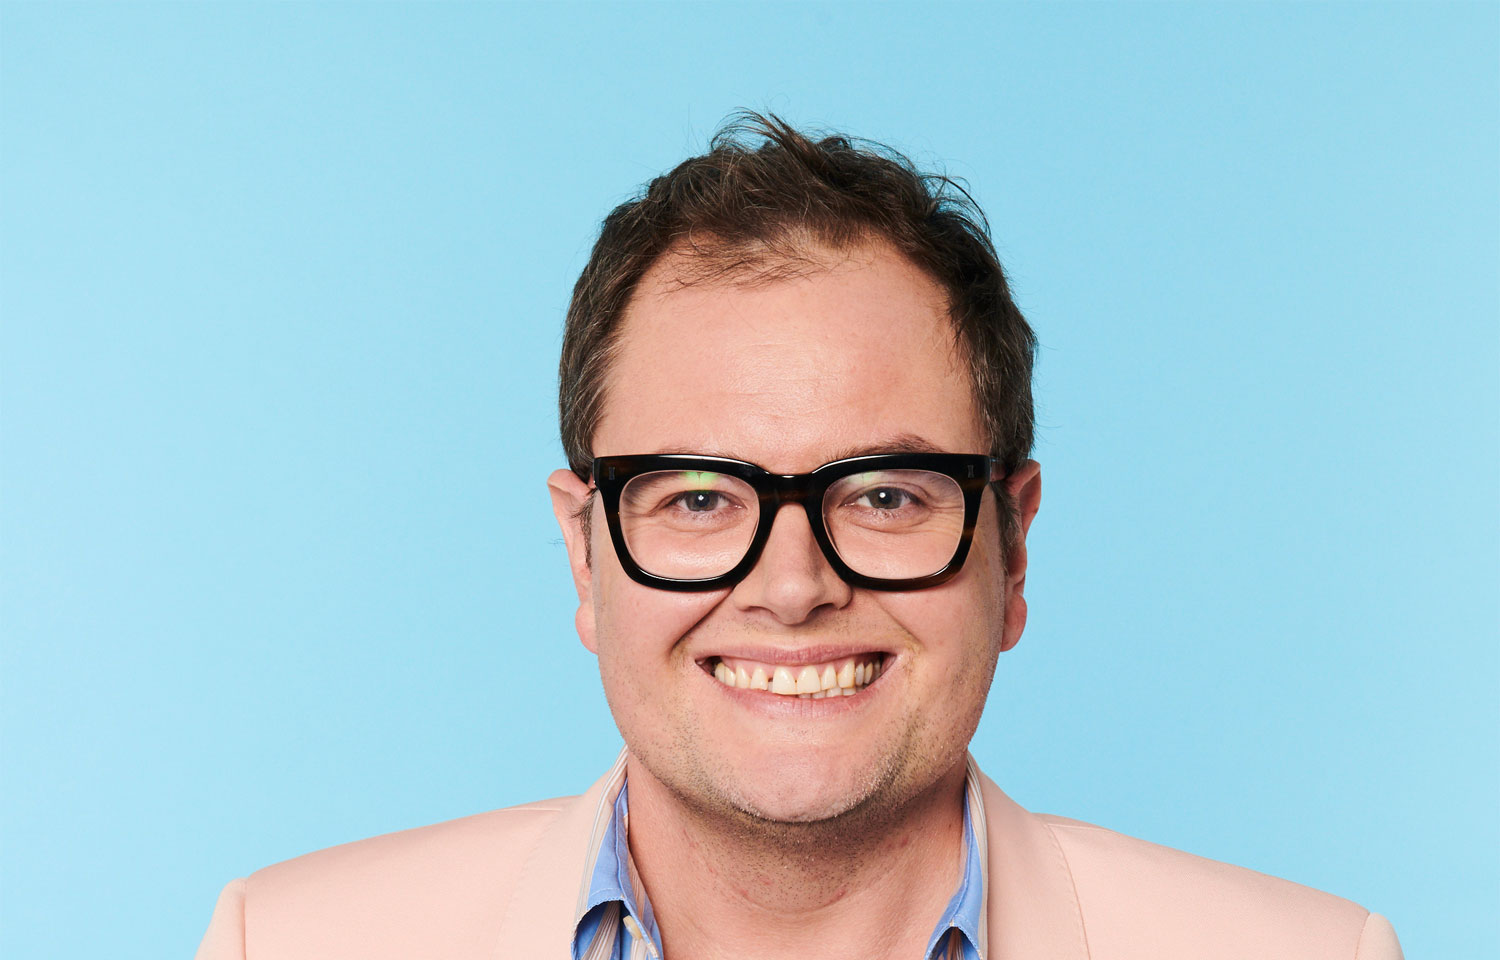 ALAN CARR LAUNCHES HIS BRAND NEW PODCAST LIFE'S A BEACH